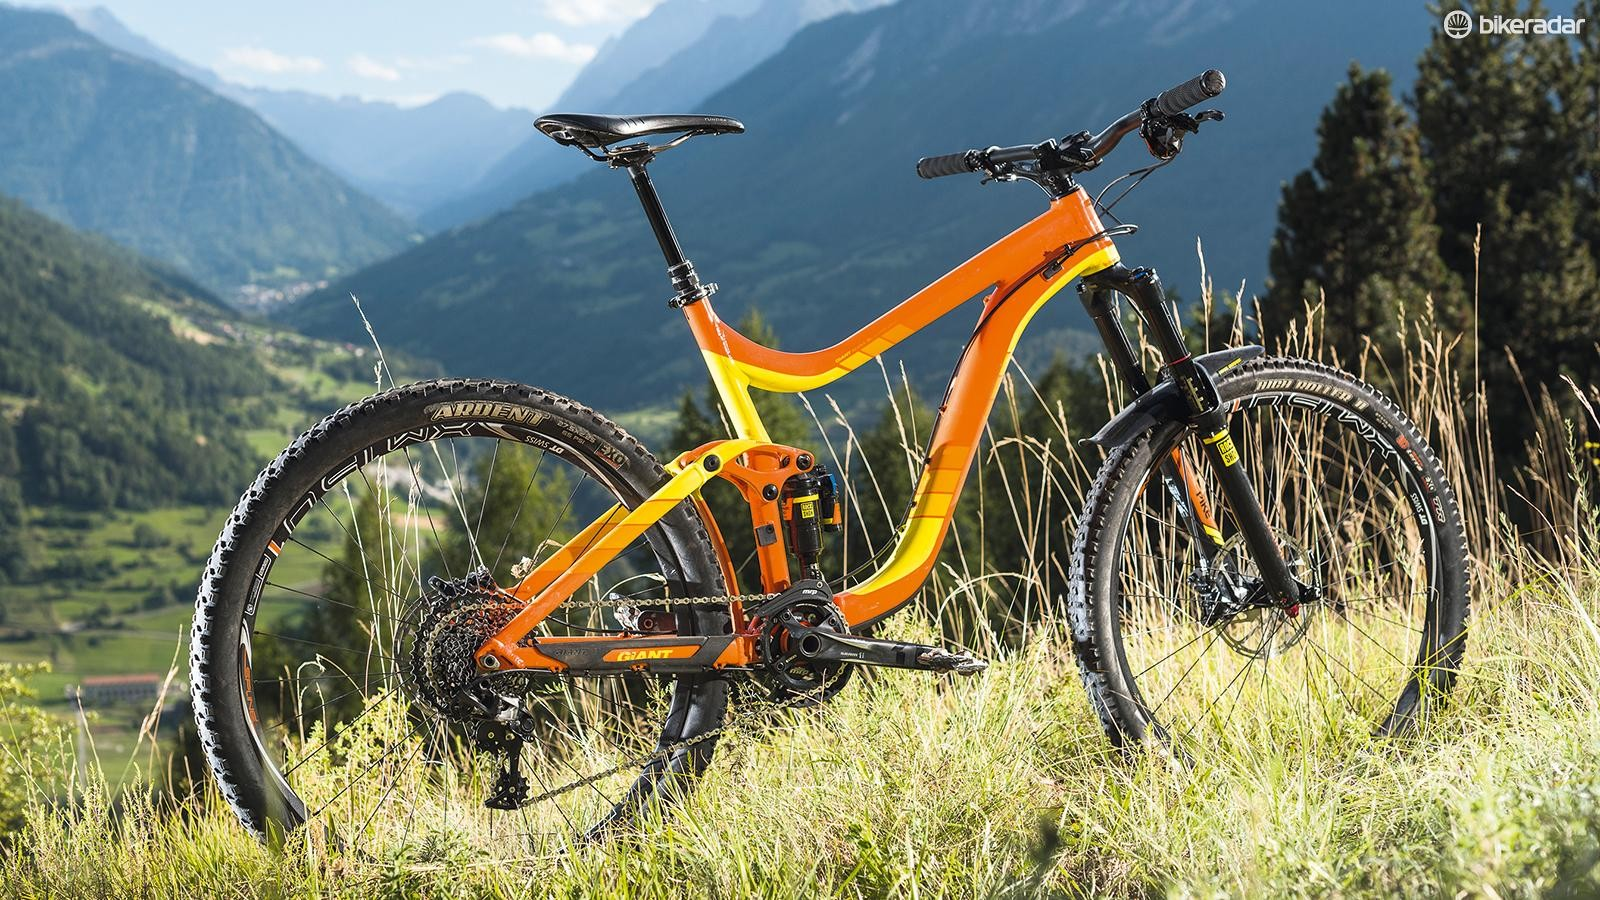 Giant's Reign 1 isn't a bike you'll misplace, unless you make a habit of riding bright orange hills